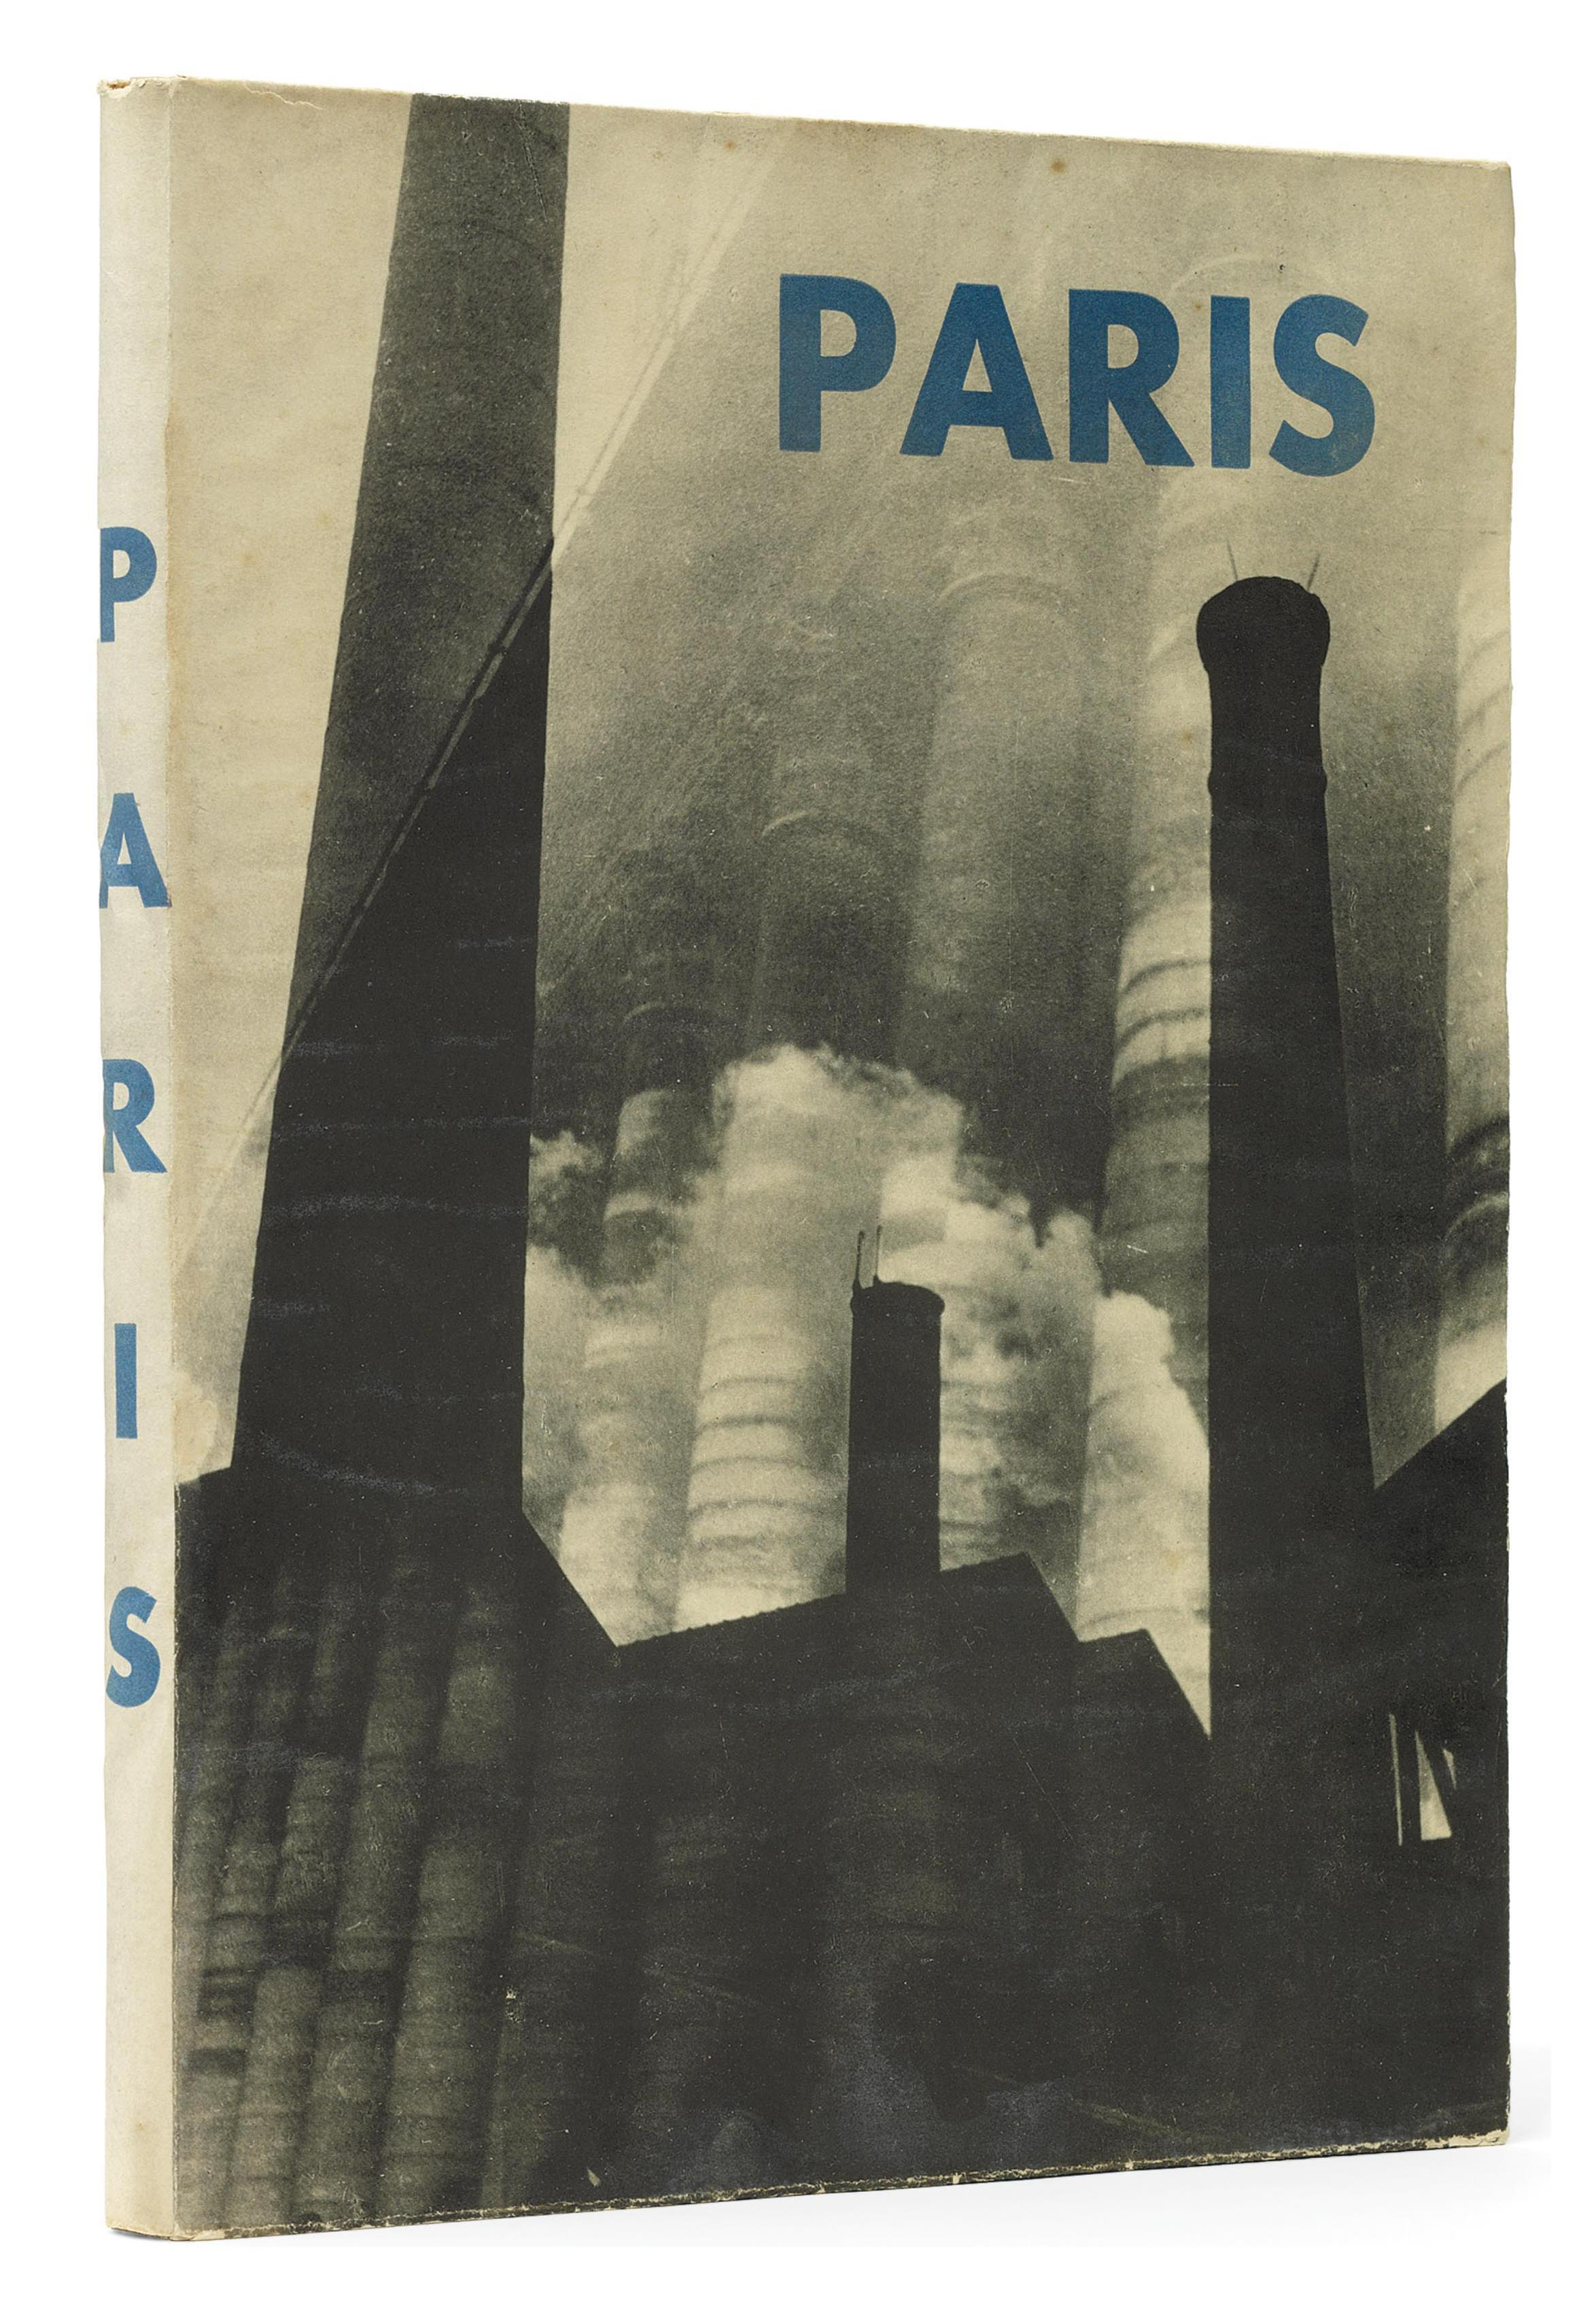 MOI VER. Paris. Introduction by Fernand Léger. Paris: Jeanne Walter, 1931. 4° (294 x 220 mm). 78 pages of black and white photomontages. Original photo-illustrated wrappers (extremities lightly rubbed, a few small spots). Provenance: Jeanne Walter (thence by descent; letter of provenance).